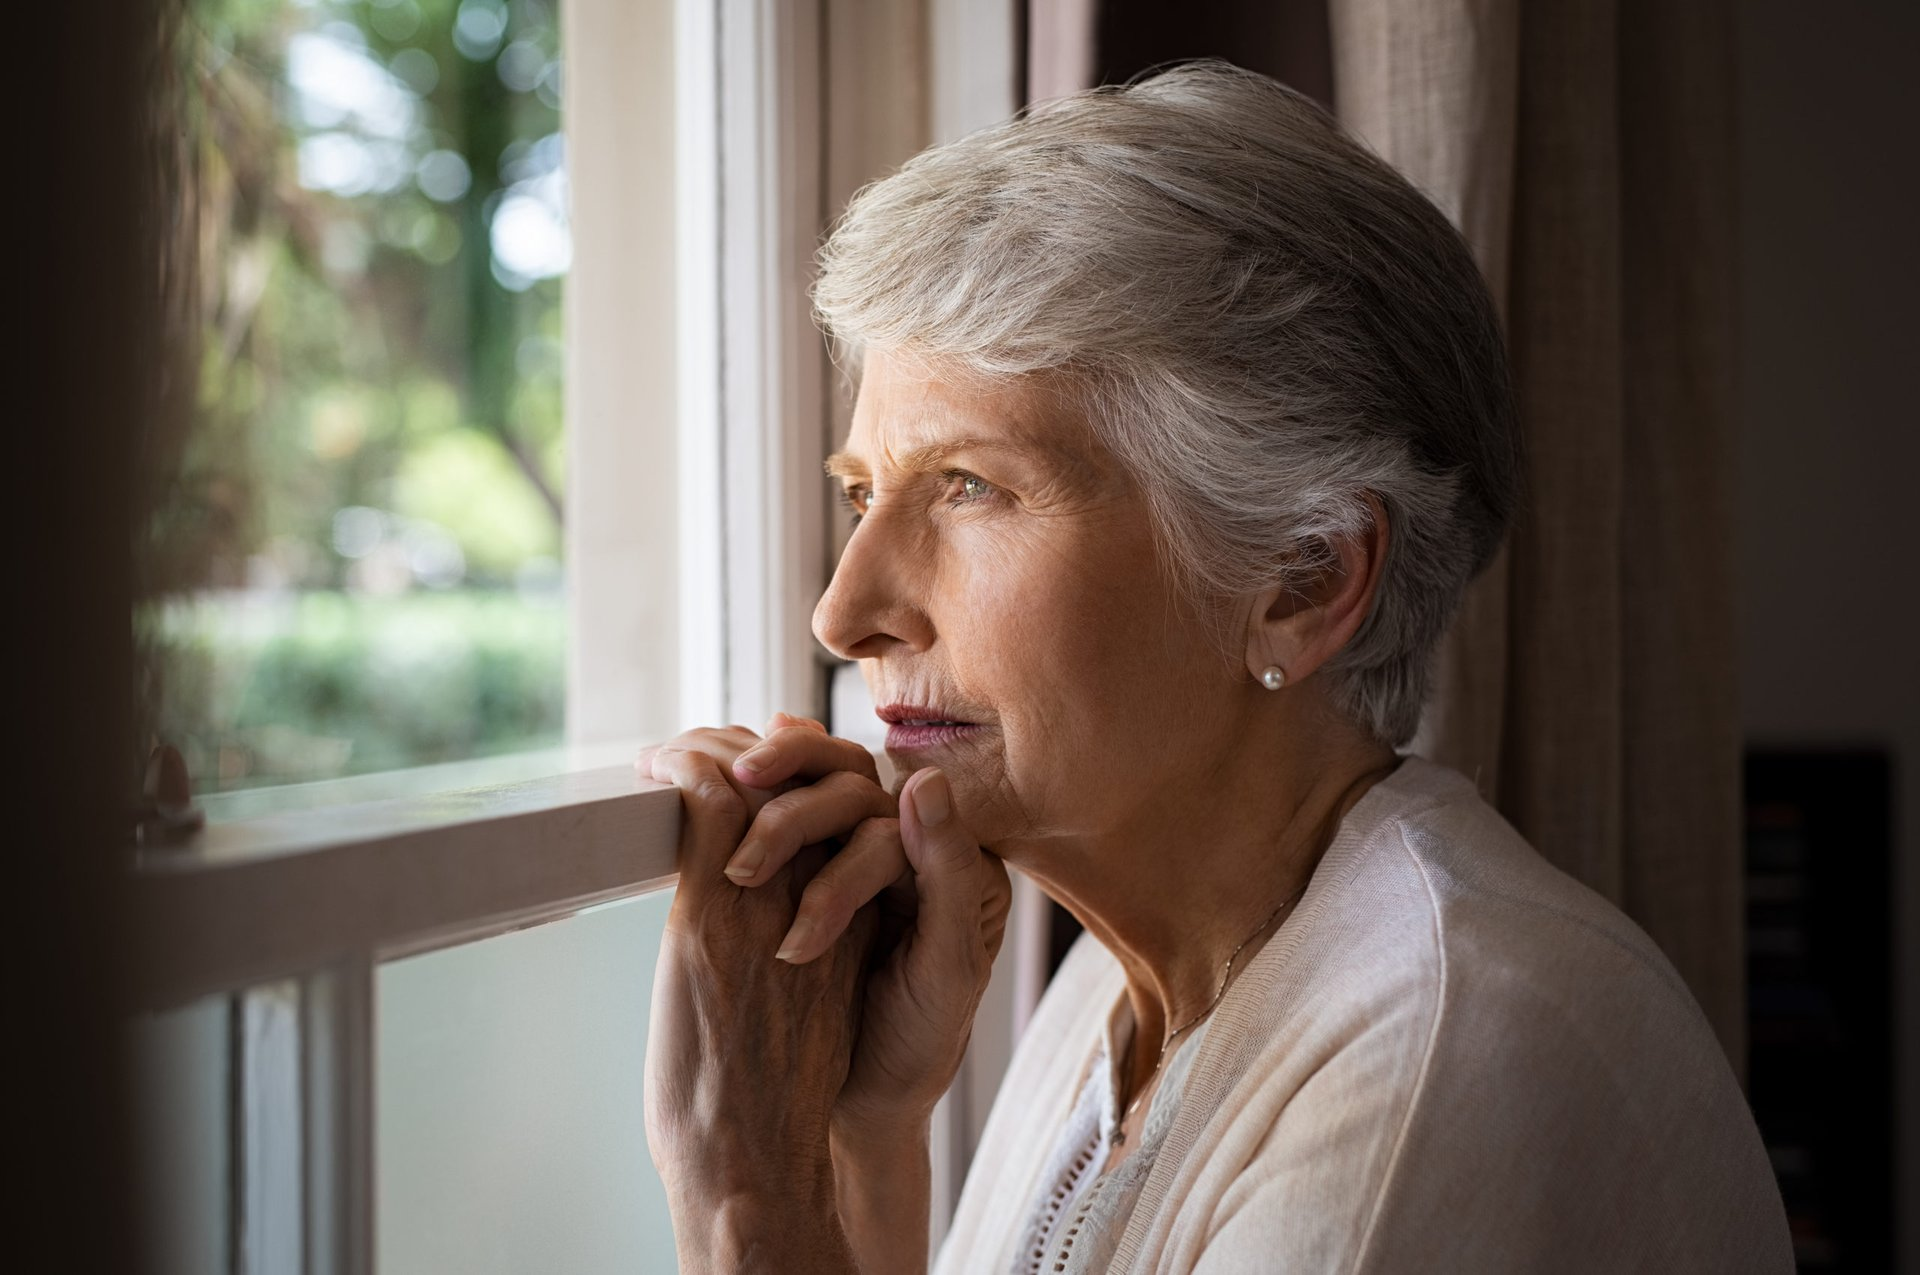 Worried senior looking out a window